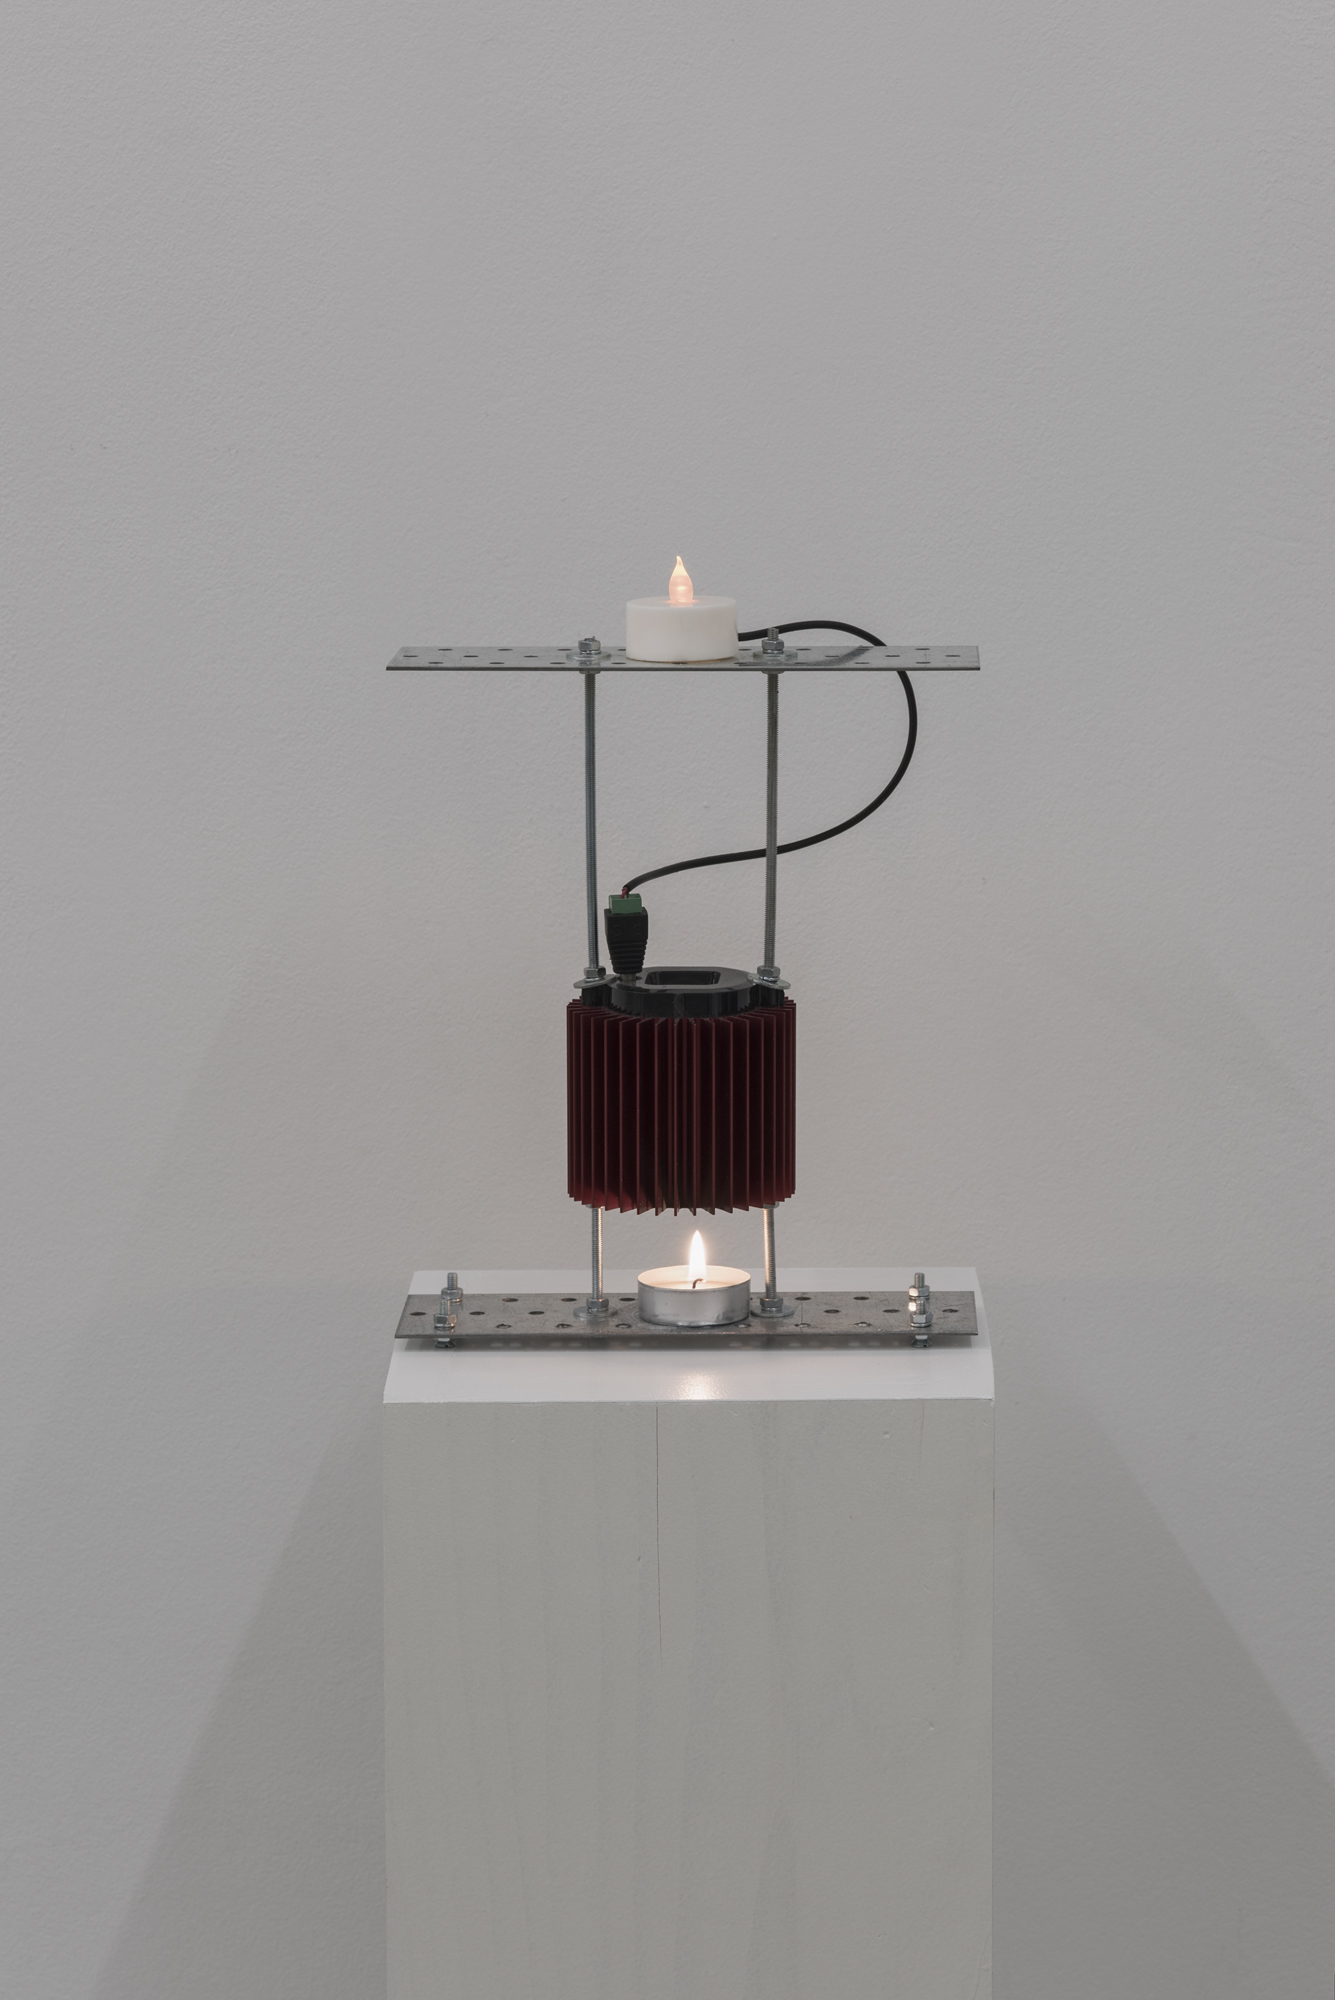 Vadim FISHKIN, Prometheus electronic (candle version), 2013, candle, thermoelectric generator, electric candle, 30 x 20 x 6 cm